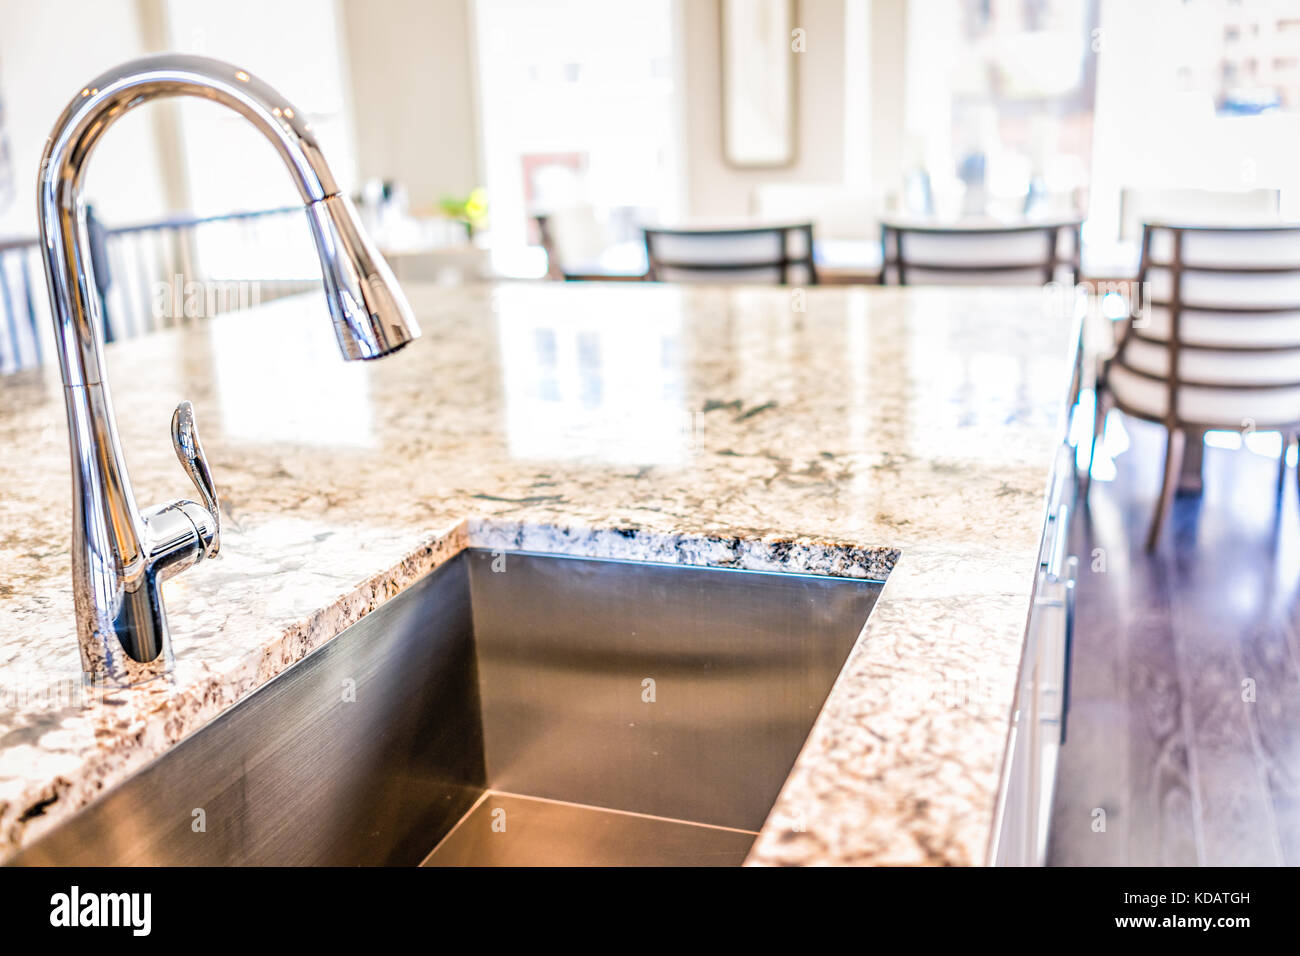 New modern faucet and kitchen room sink closeup with island and